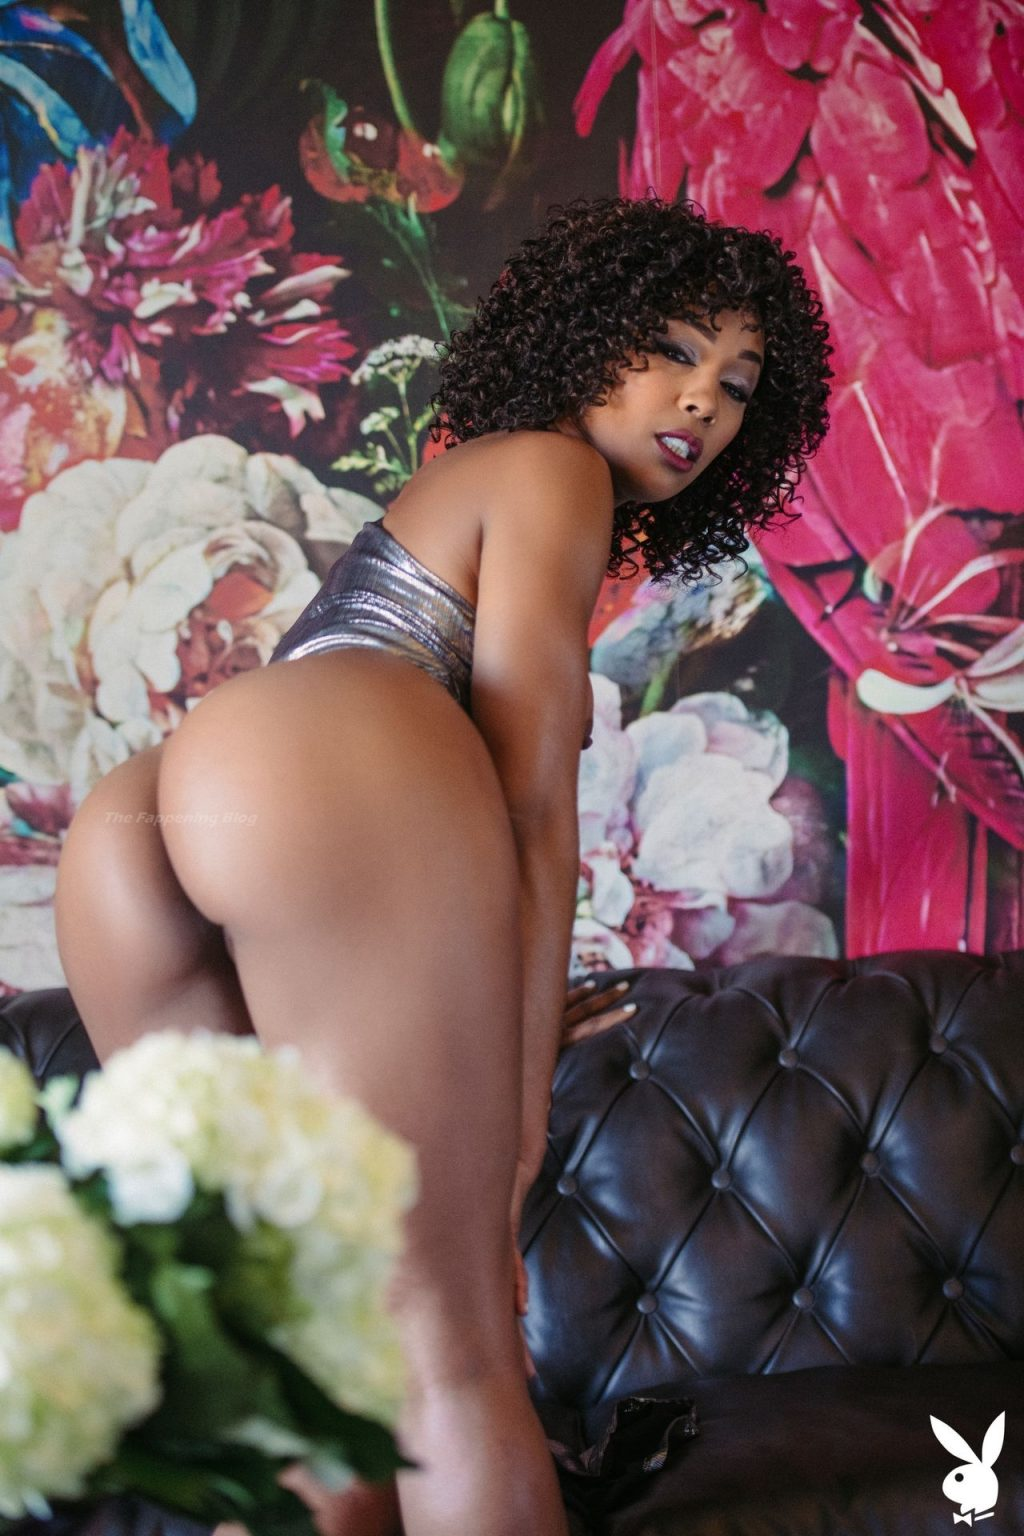 Misty Stone Nude – Natural Desire (48 Photos + Video)